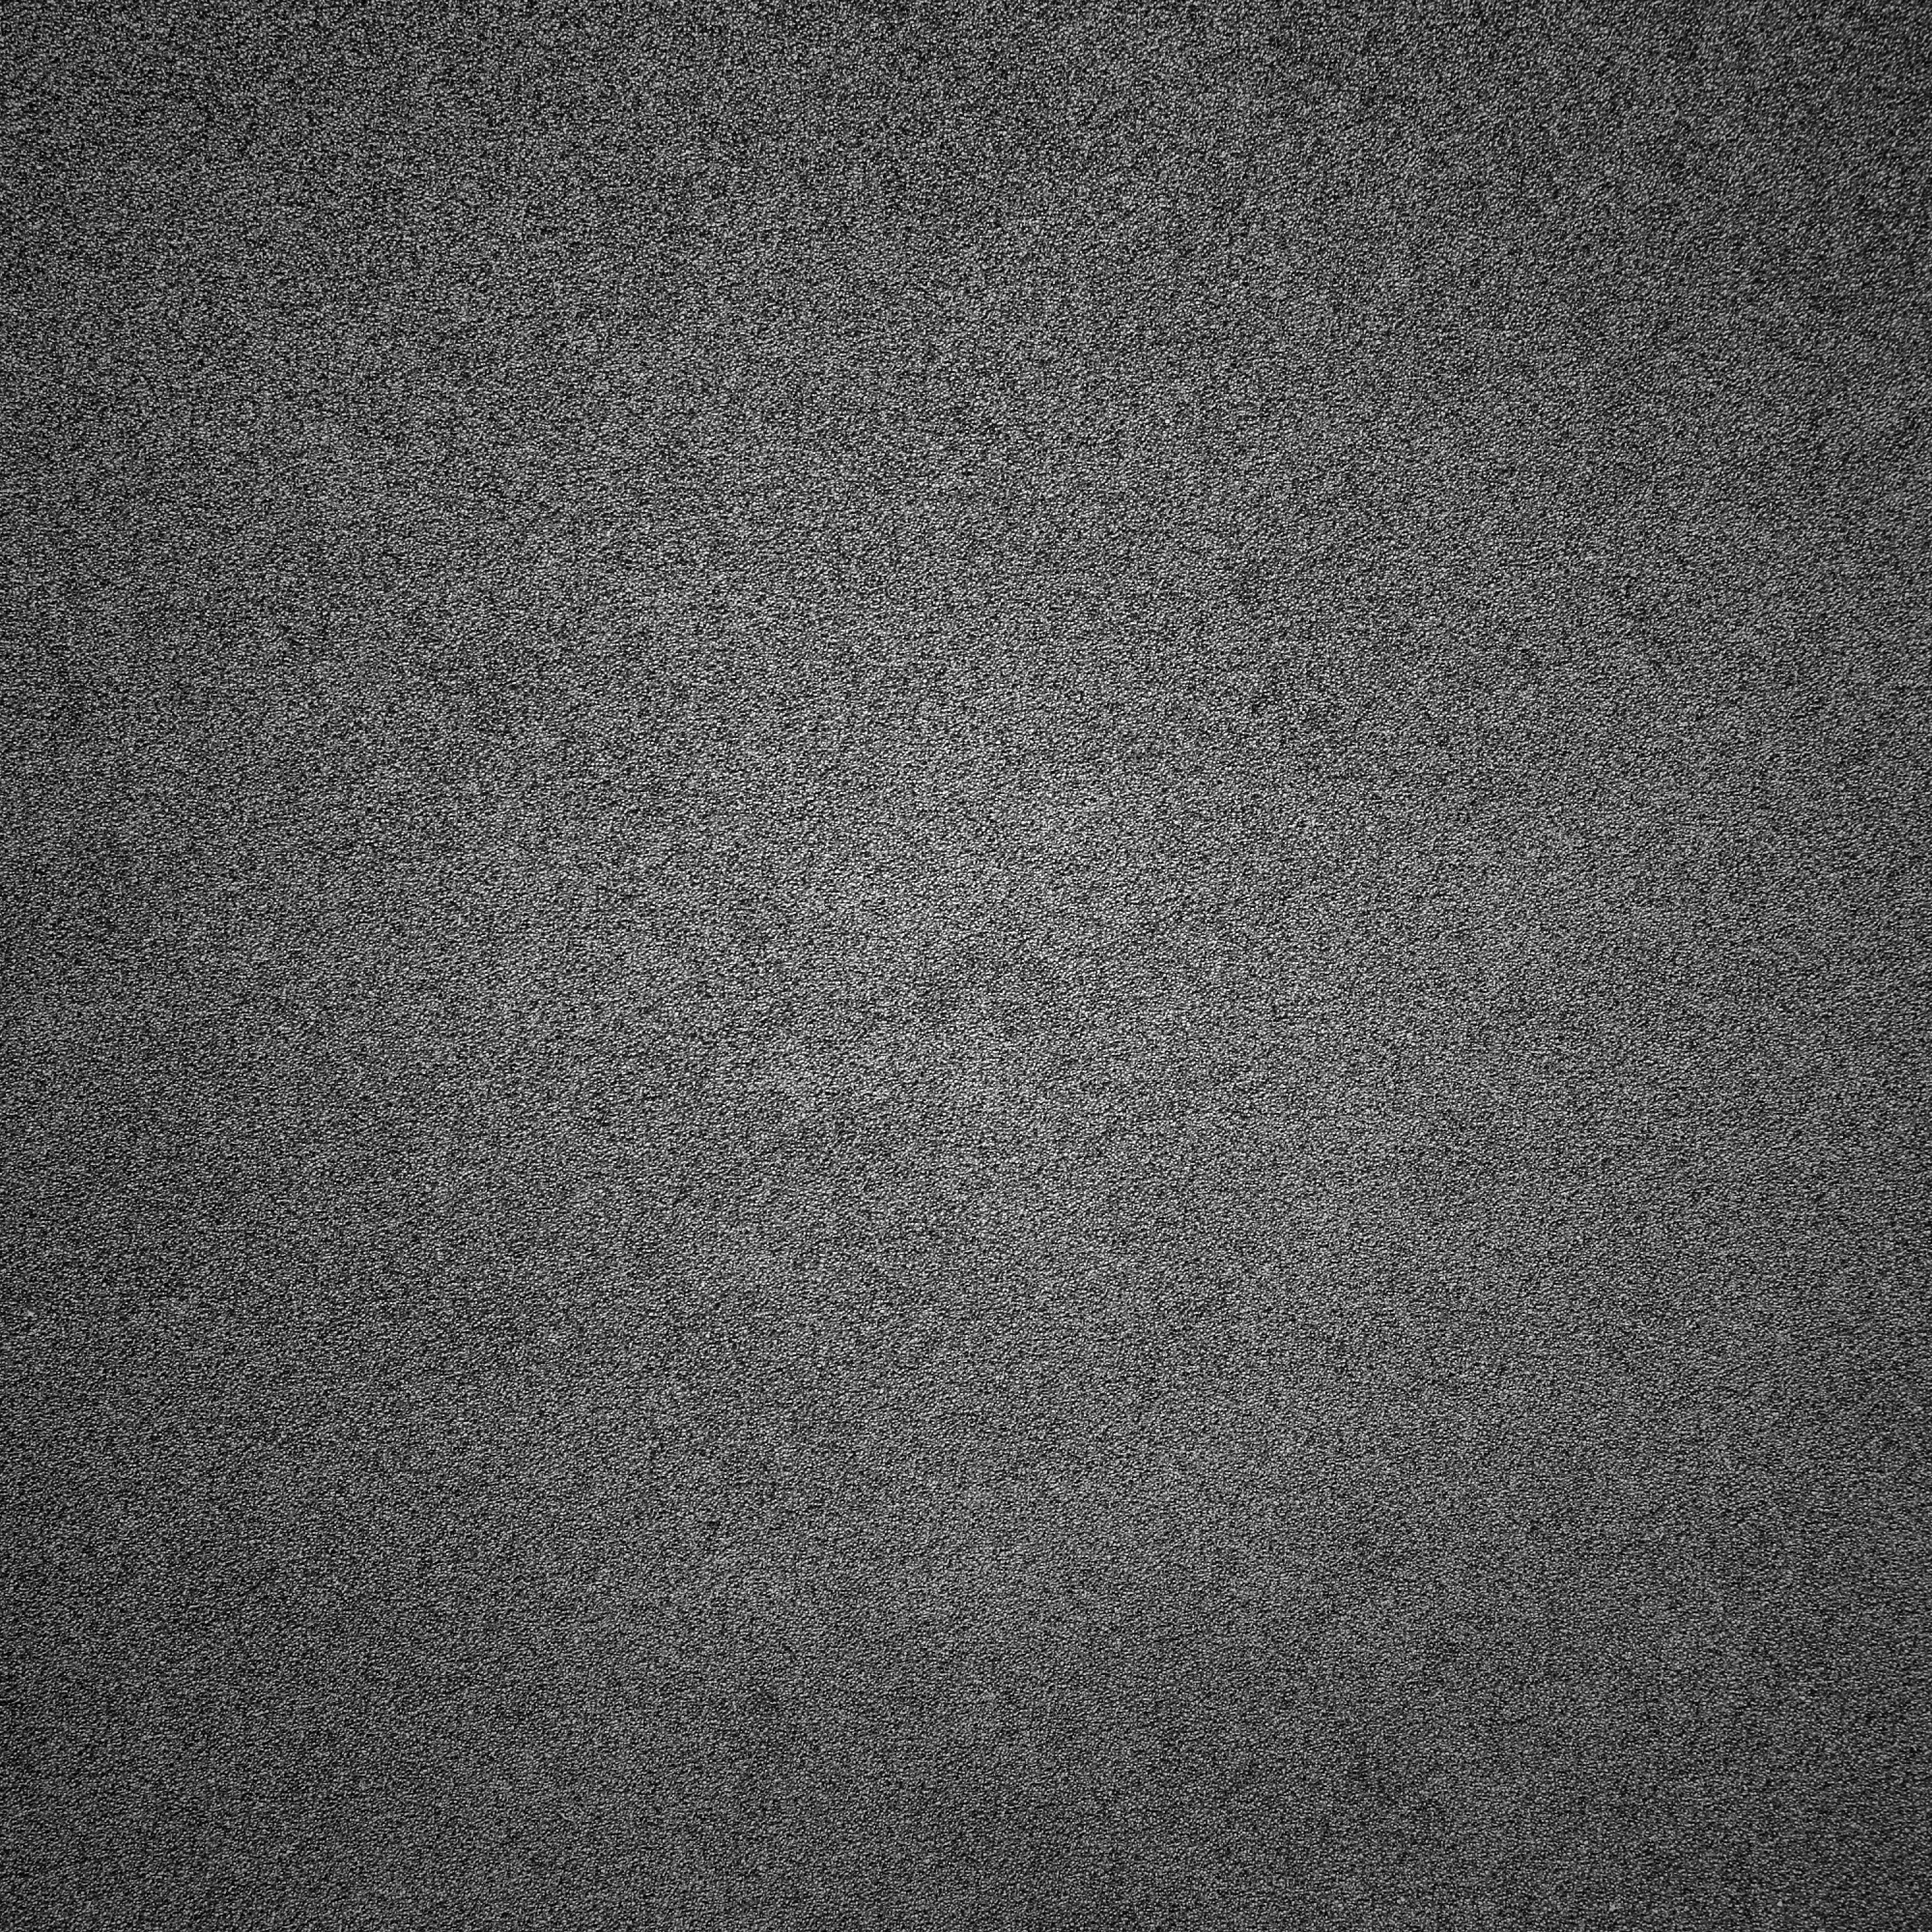 Black abstract texture for background